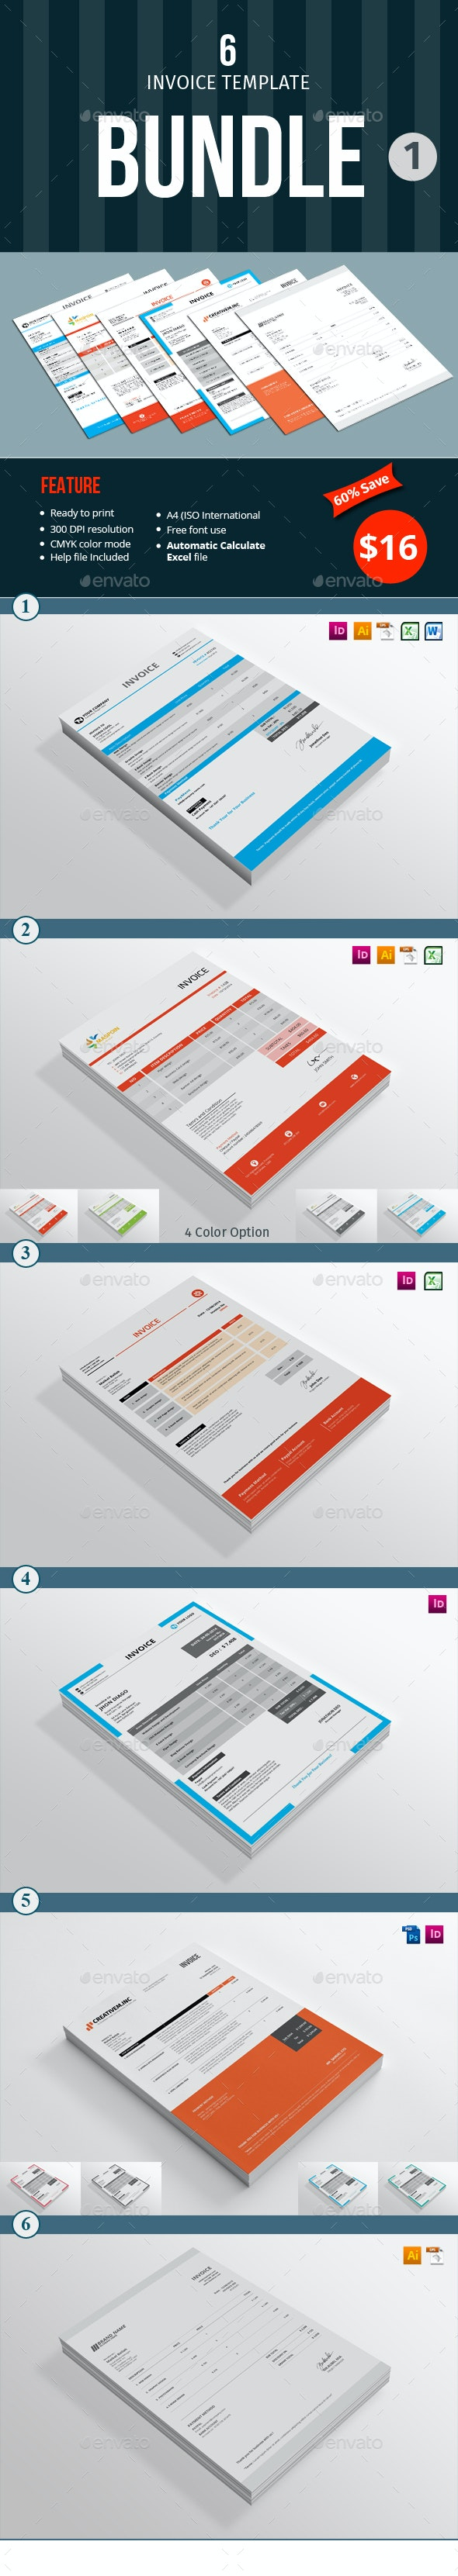 Invoice Template Bundle - 1 - Proposals & Invoices Stationery